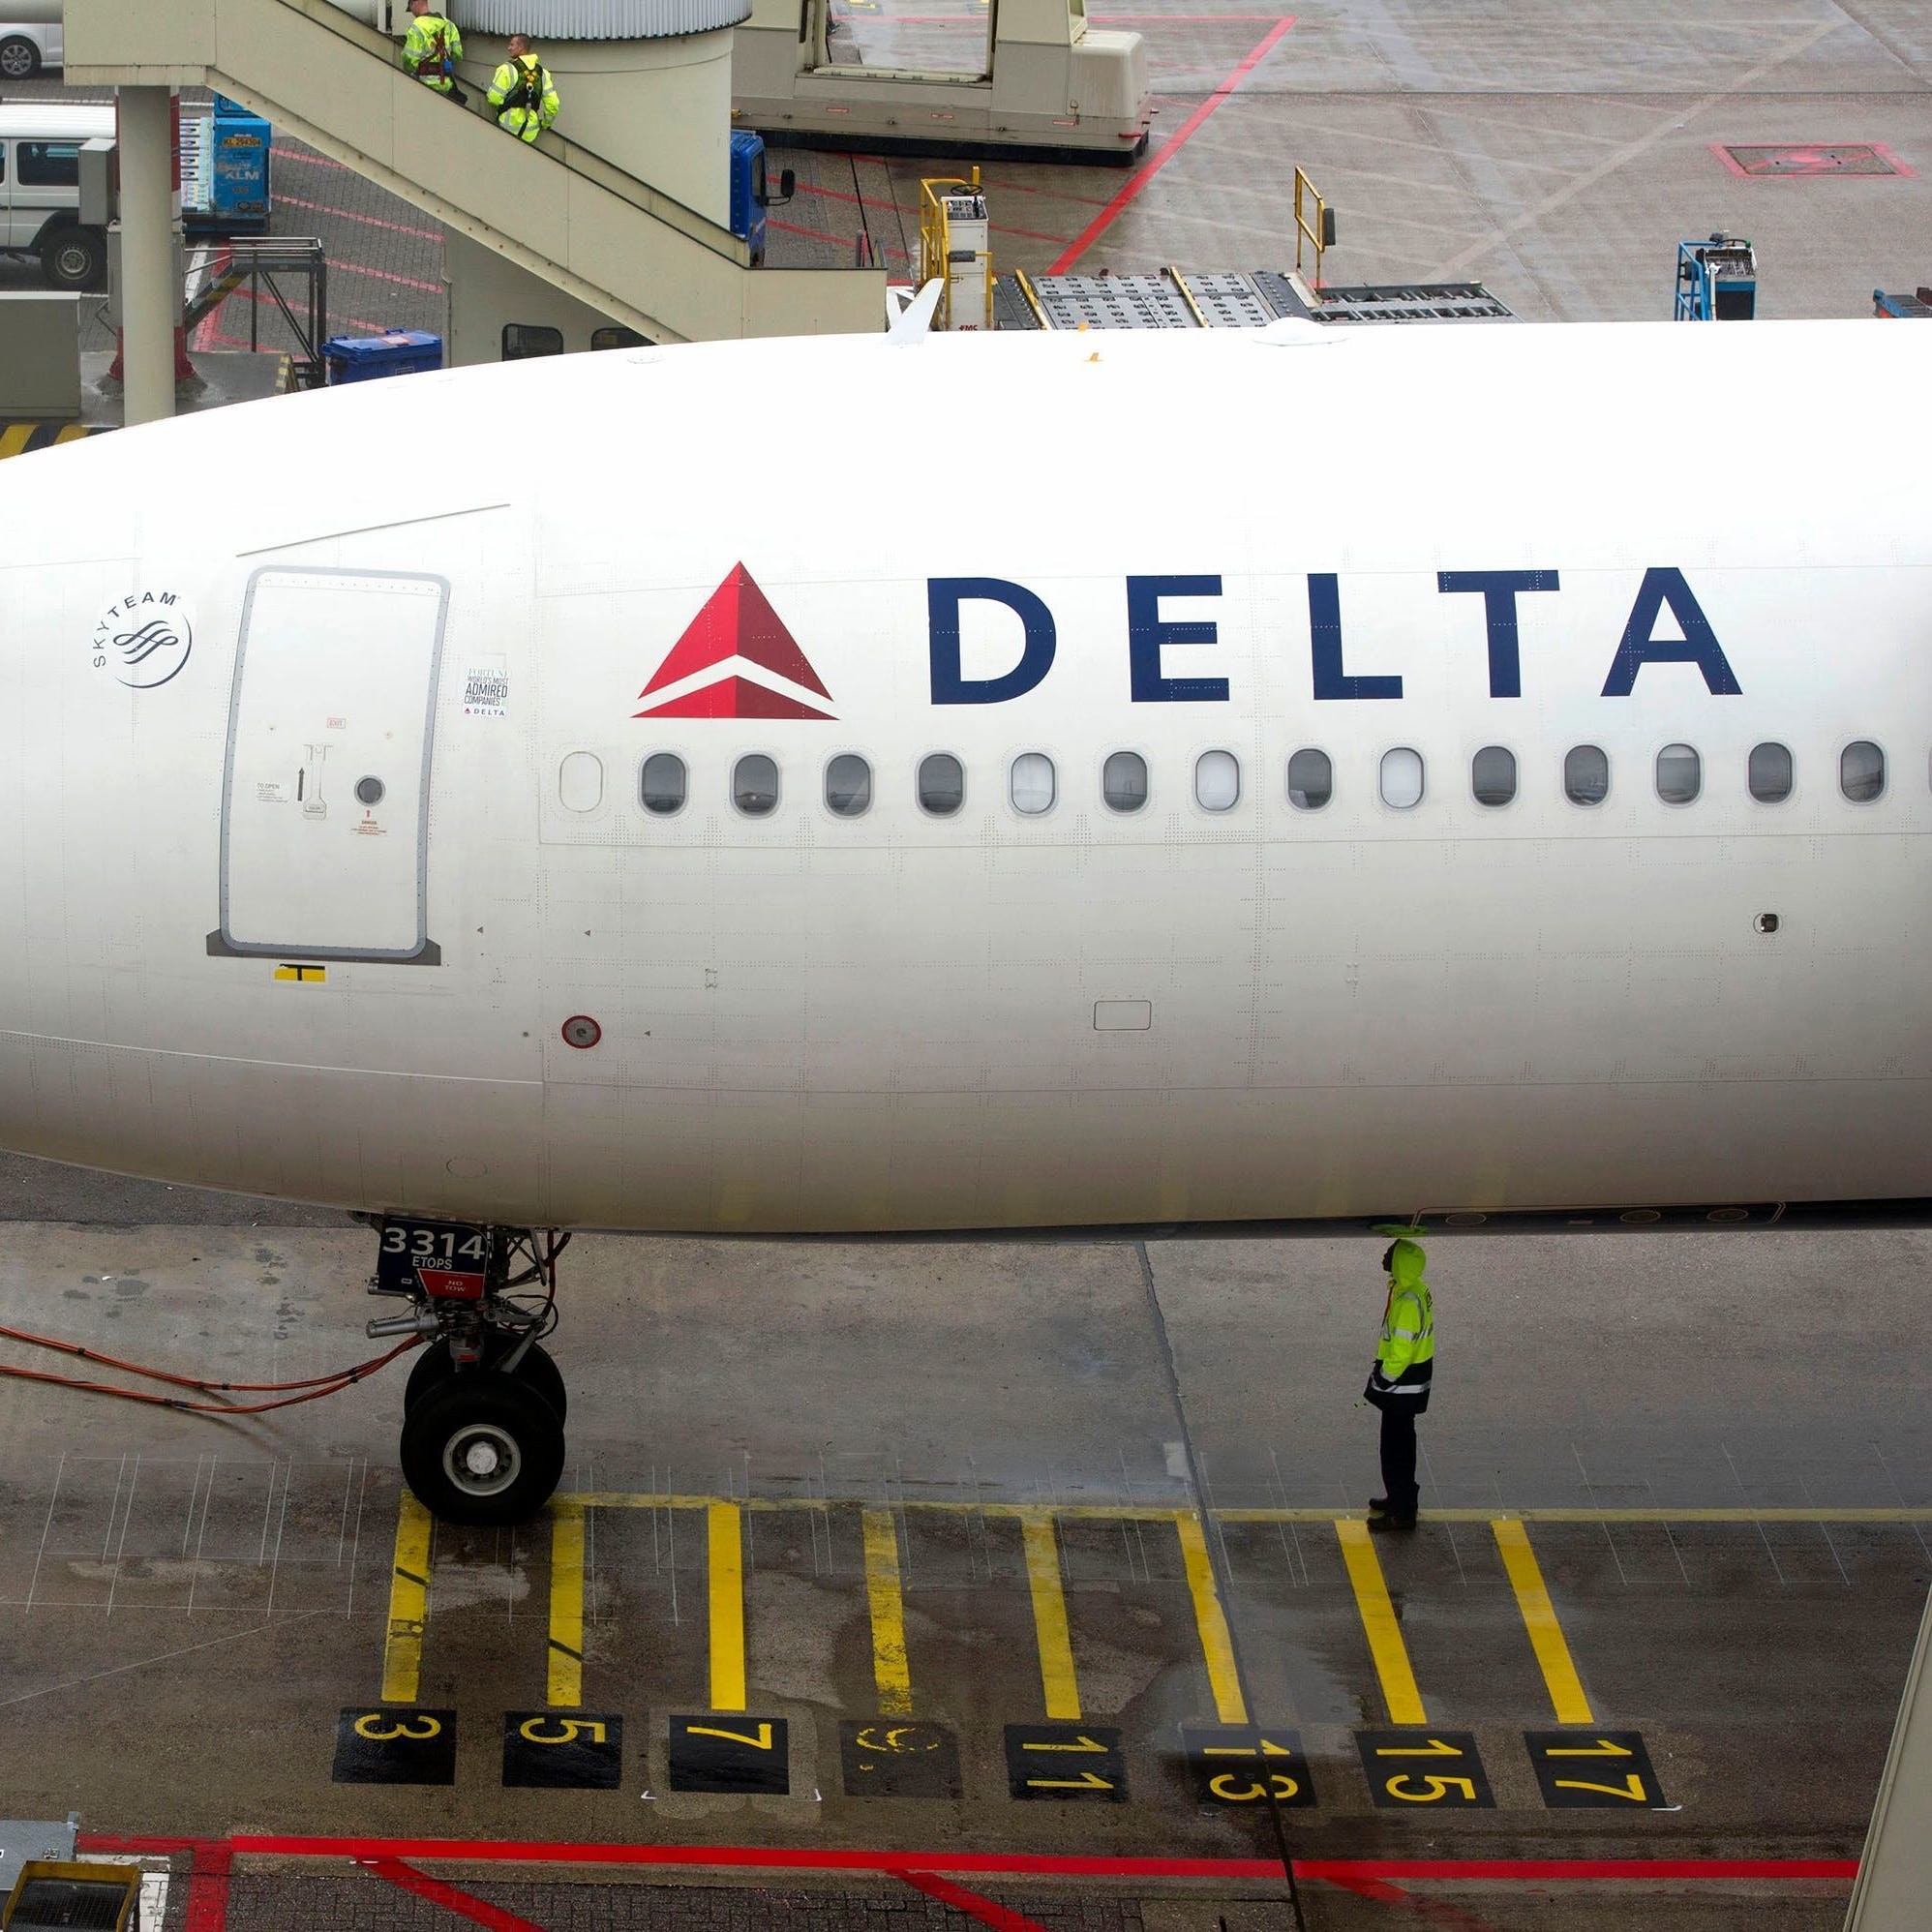 A Delta aircraft is seen on Schiphol airport in Amsterdam, Wednesday, Aug. 7, 2013.